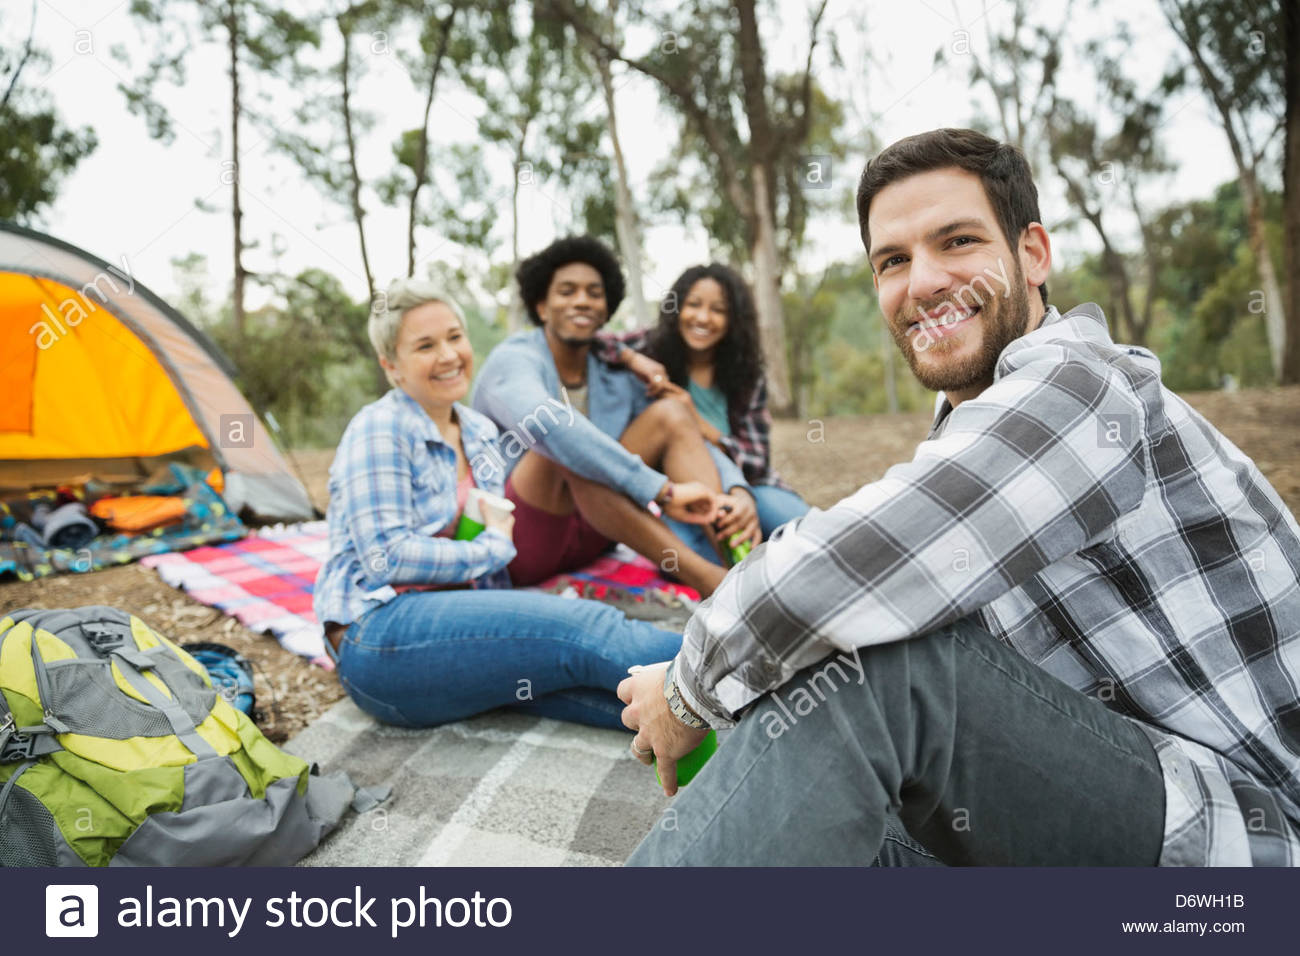 Portrait of mid adult man sitting with friends while camping - Stock Image